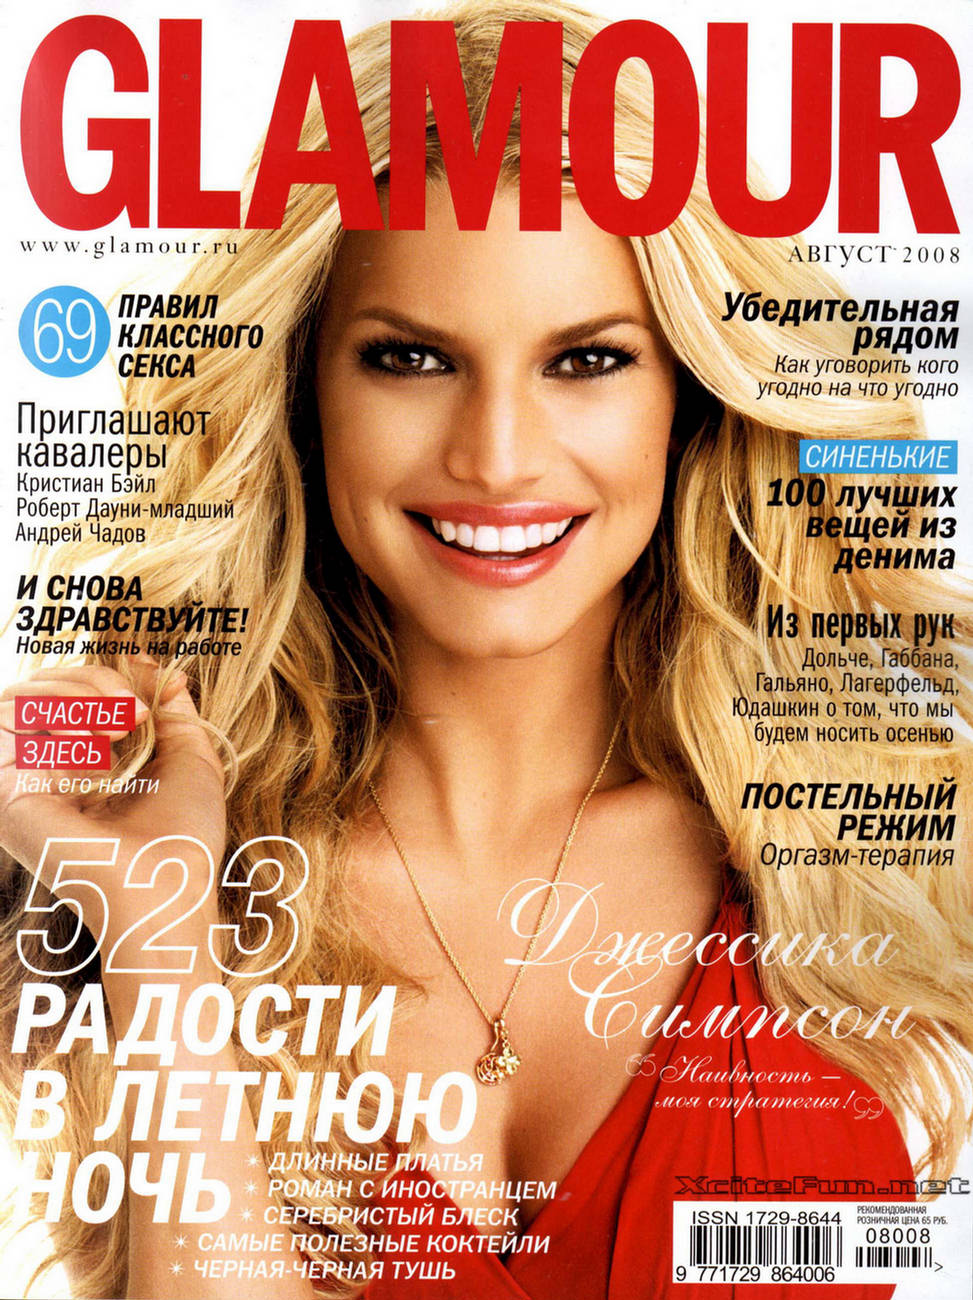 Jessica Simpson Photo Shoot For Glamour Magazine Aug 2008